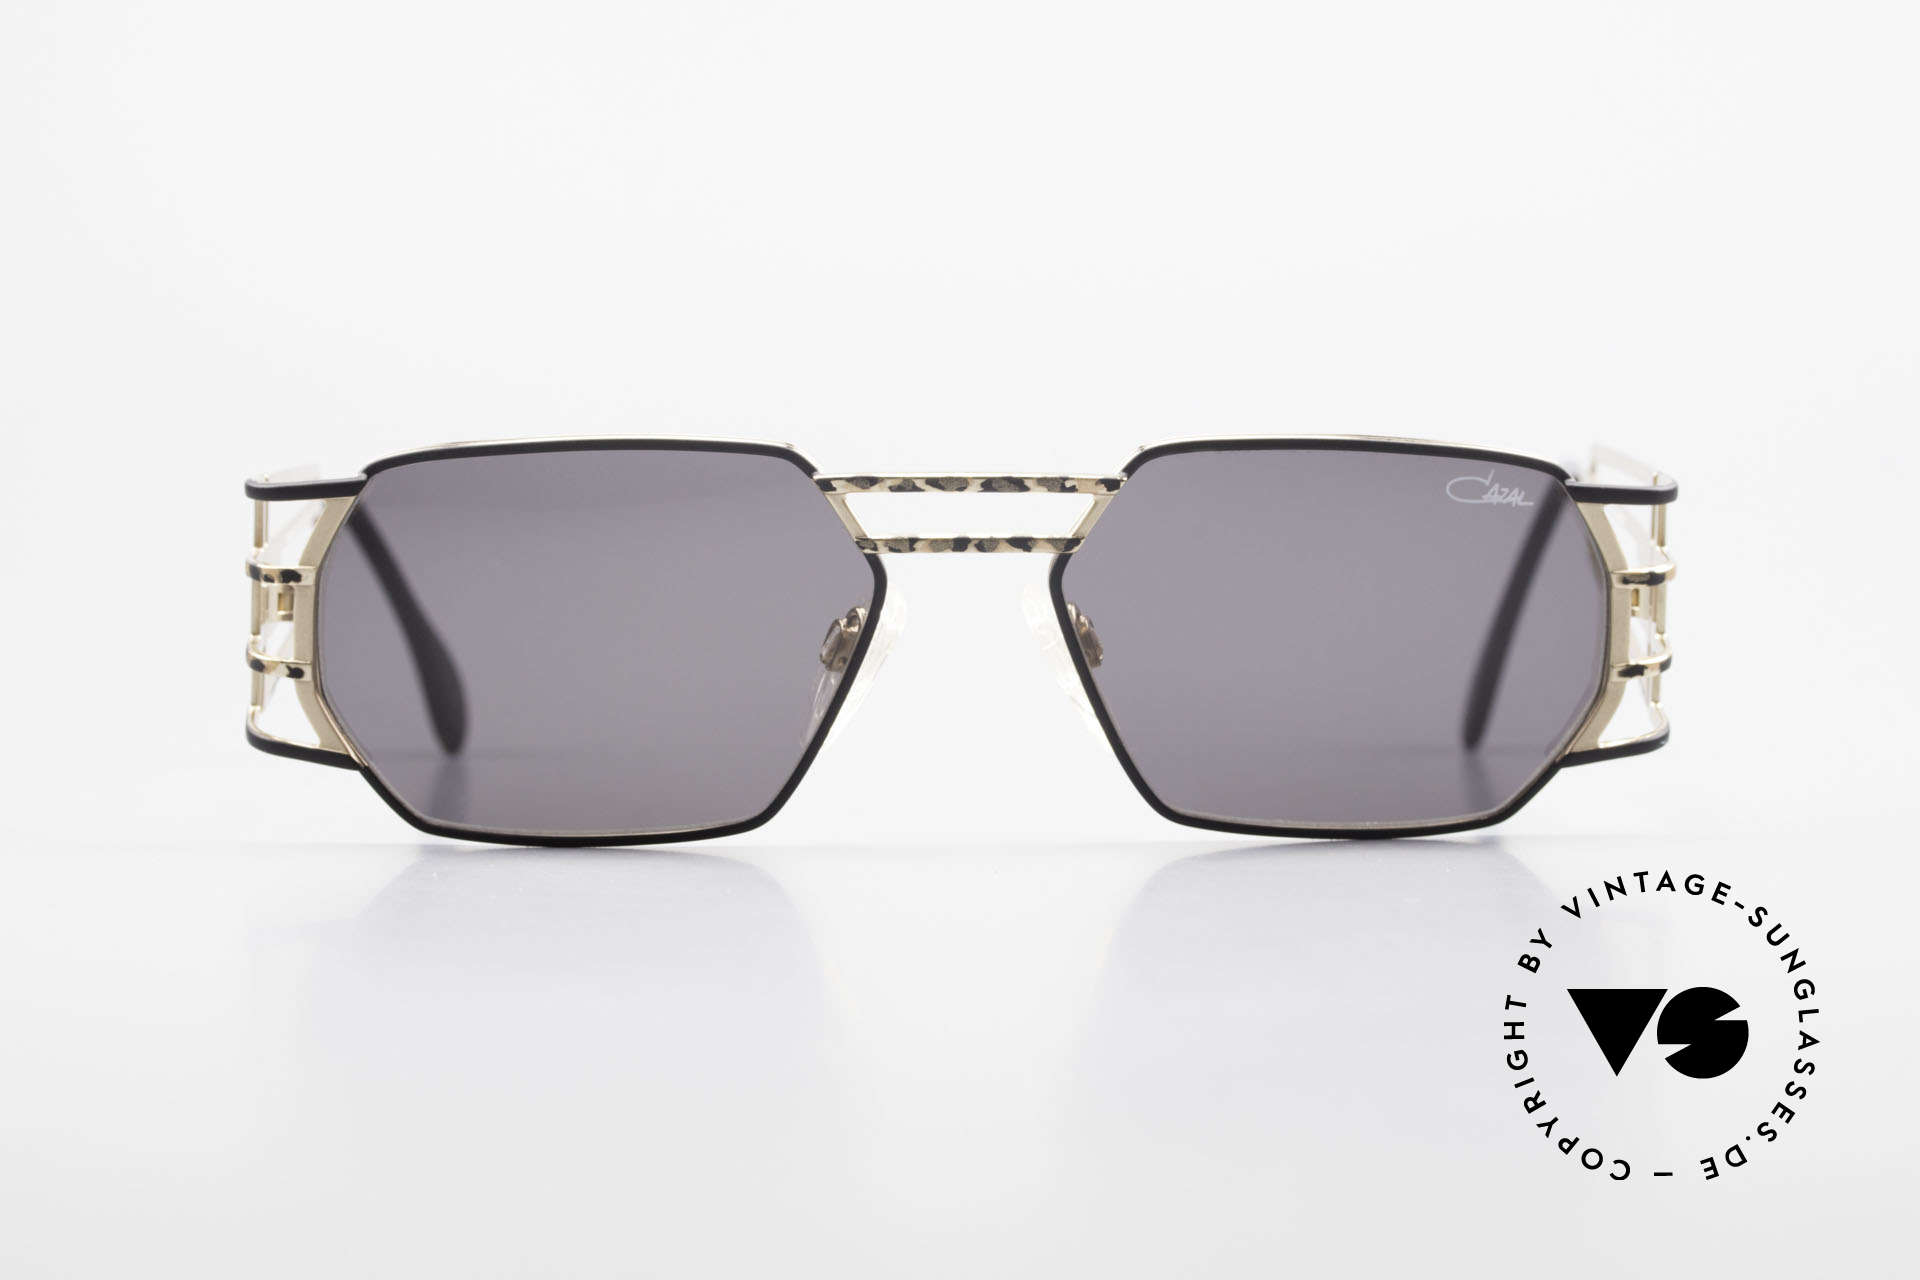 Cazal 980 Rare 90's Designer Sunglasses, angular frame with striking and sophisticated temples, Made for Men and Women